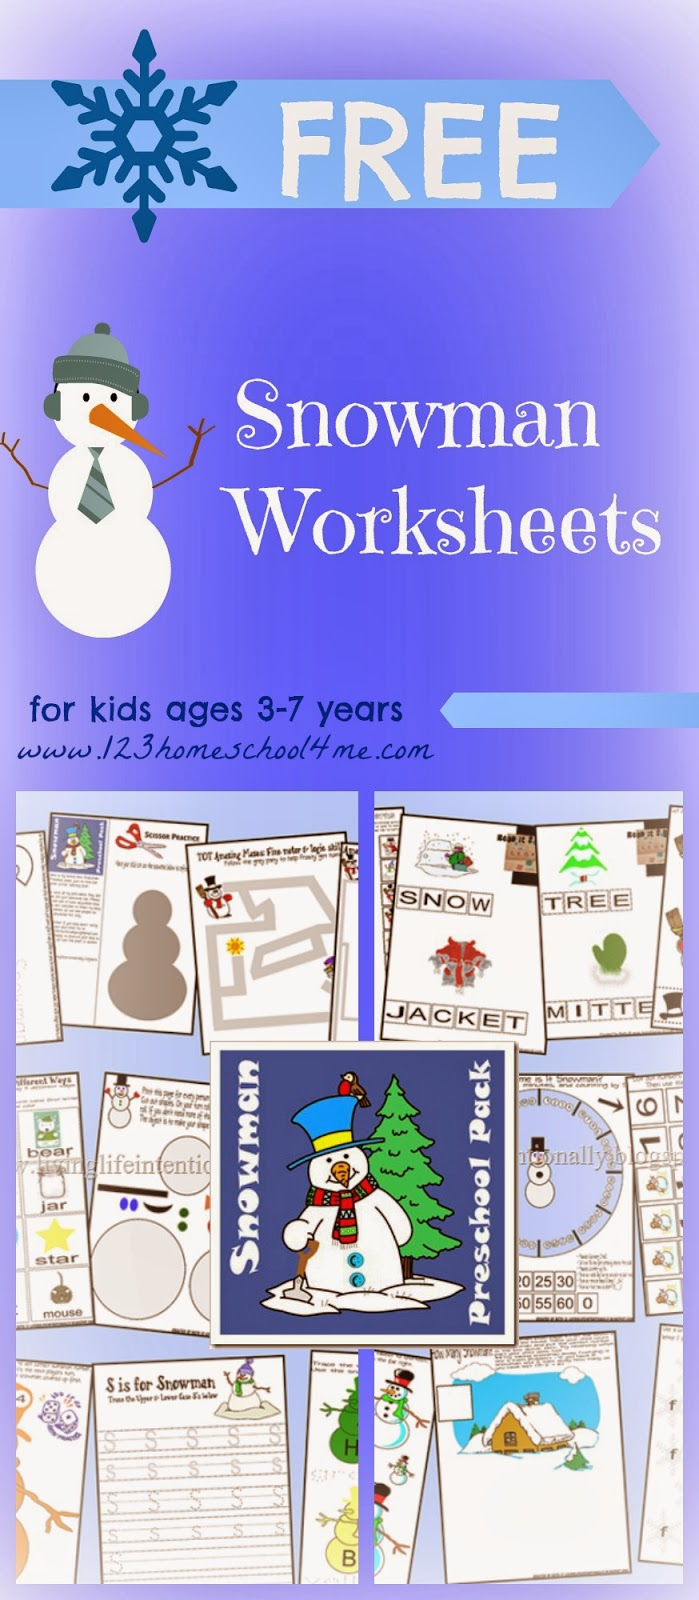 ... snowman worksheets for toddler, preschool, kindergarten, and 1st grade